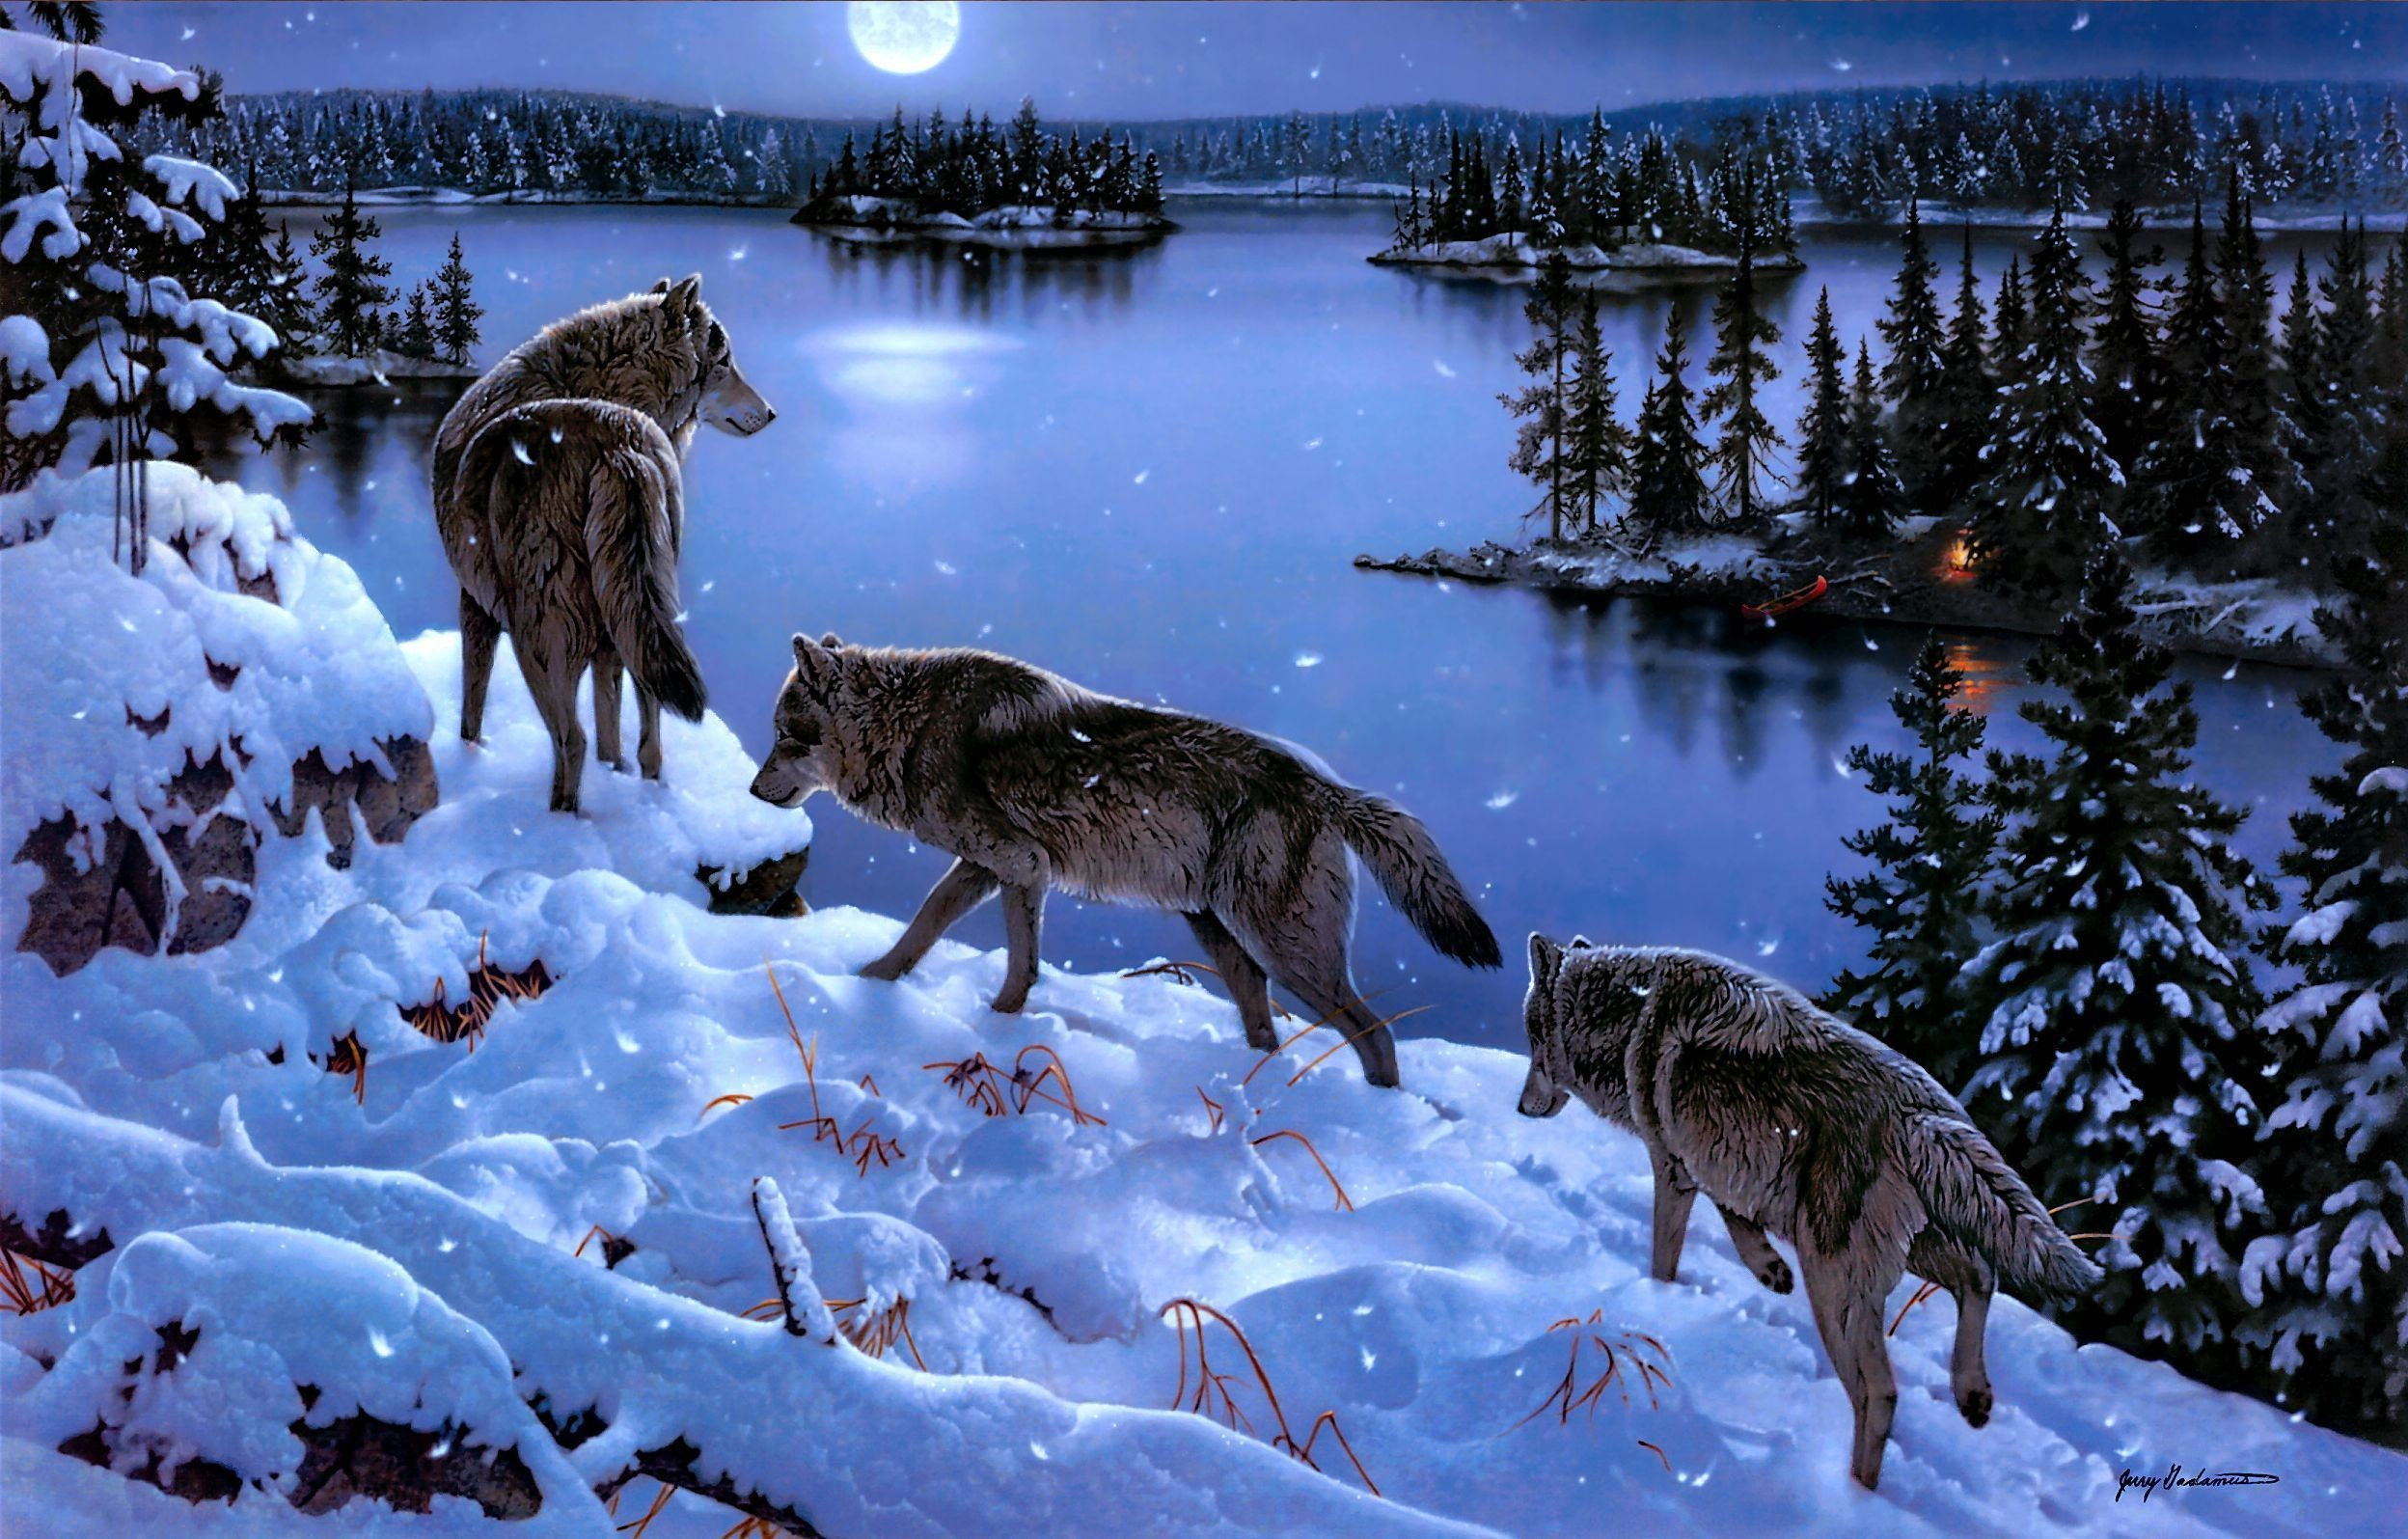 2496x1595 animal wolf wallpaper download hd images background images mac desktop  wallpapers free 4k hd pictures 2496×1595 Wallpaper HD